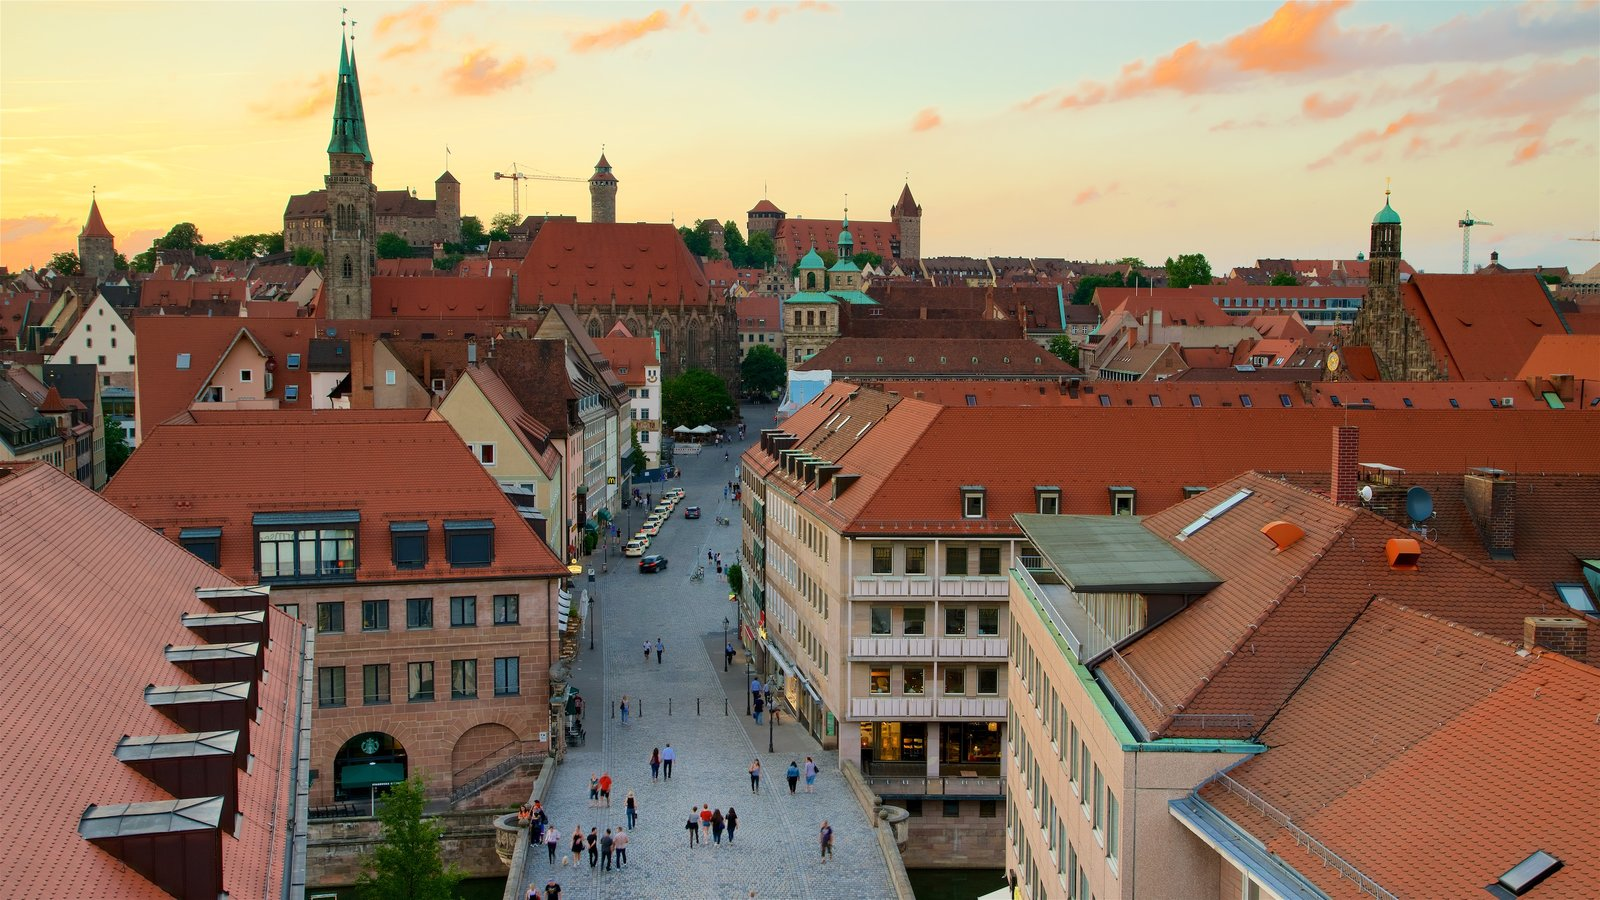 Nuremberg featuring a city, heritage elements and a sunset